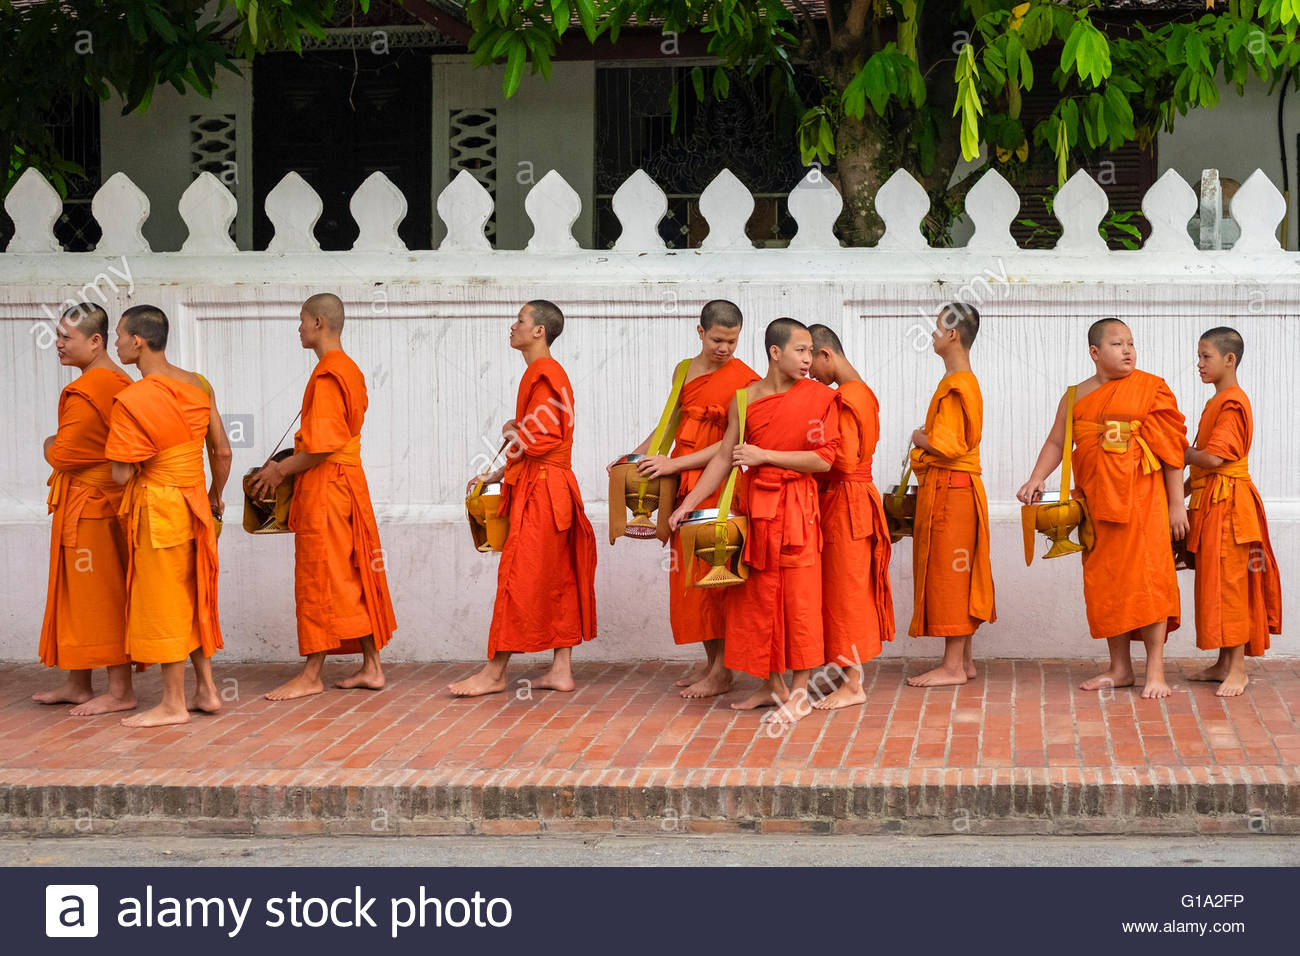 Buddhist novice monks line up to recieve alms (Tak Bat) at dawn, Luang Prabang, Louangphabang Province, Laos - Stock Image